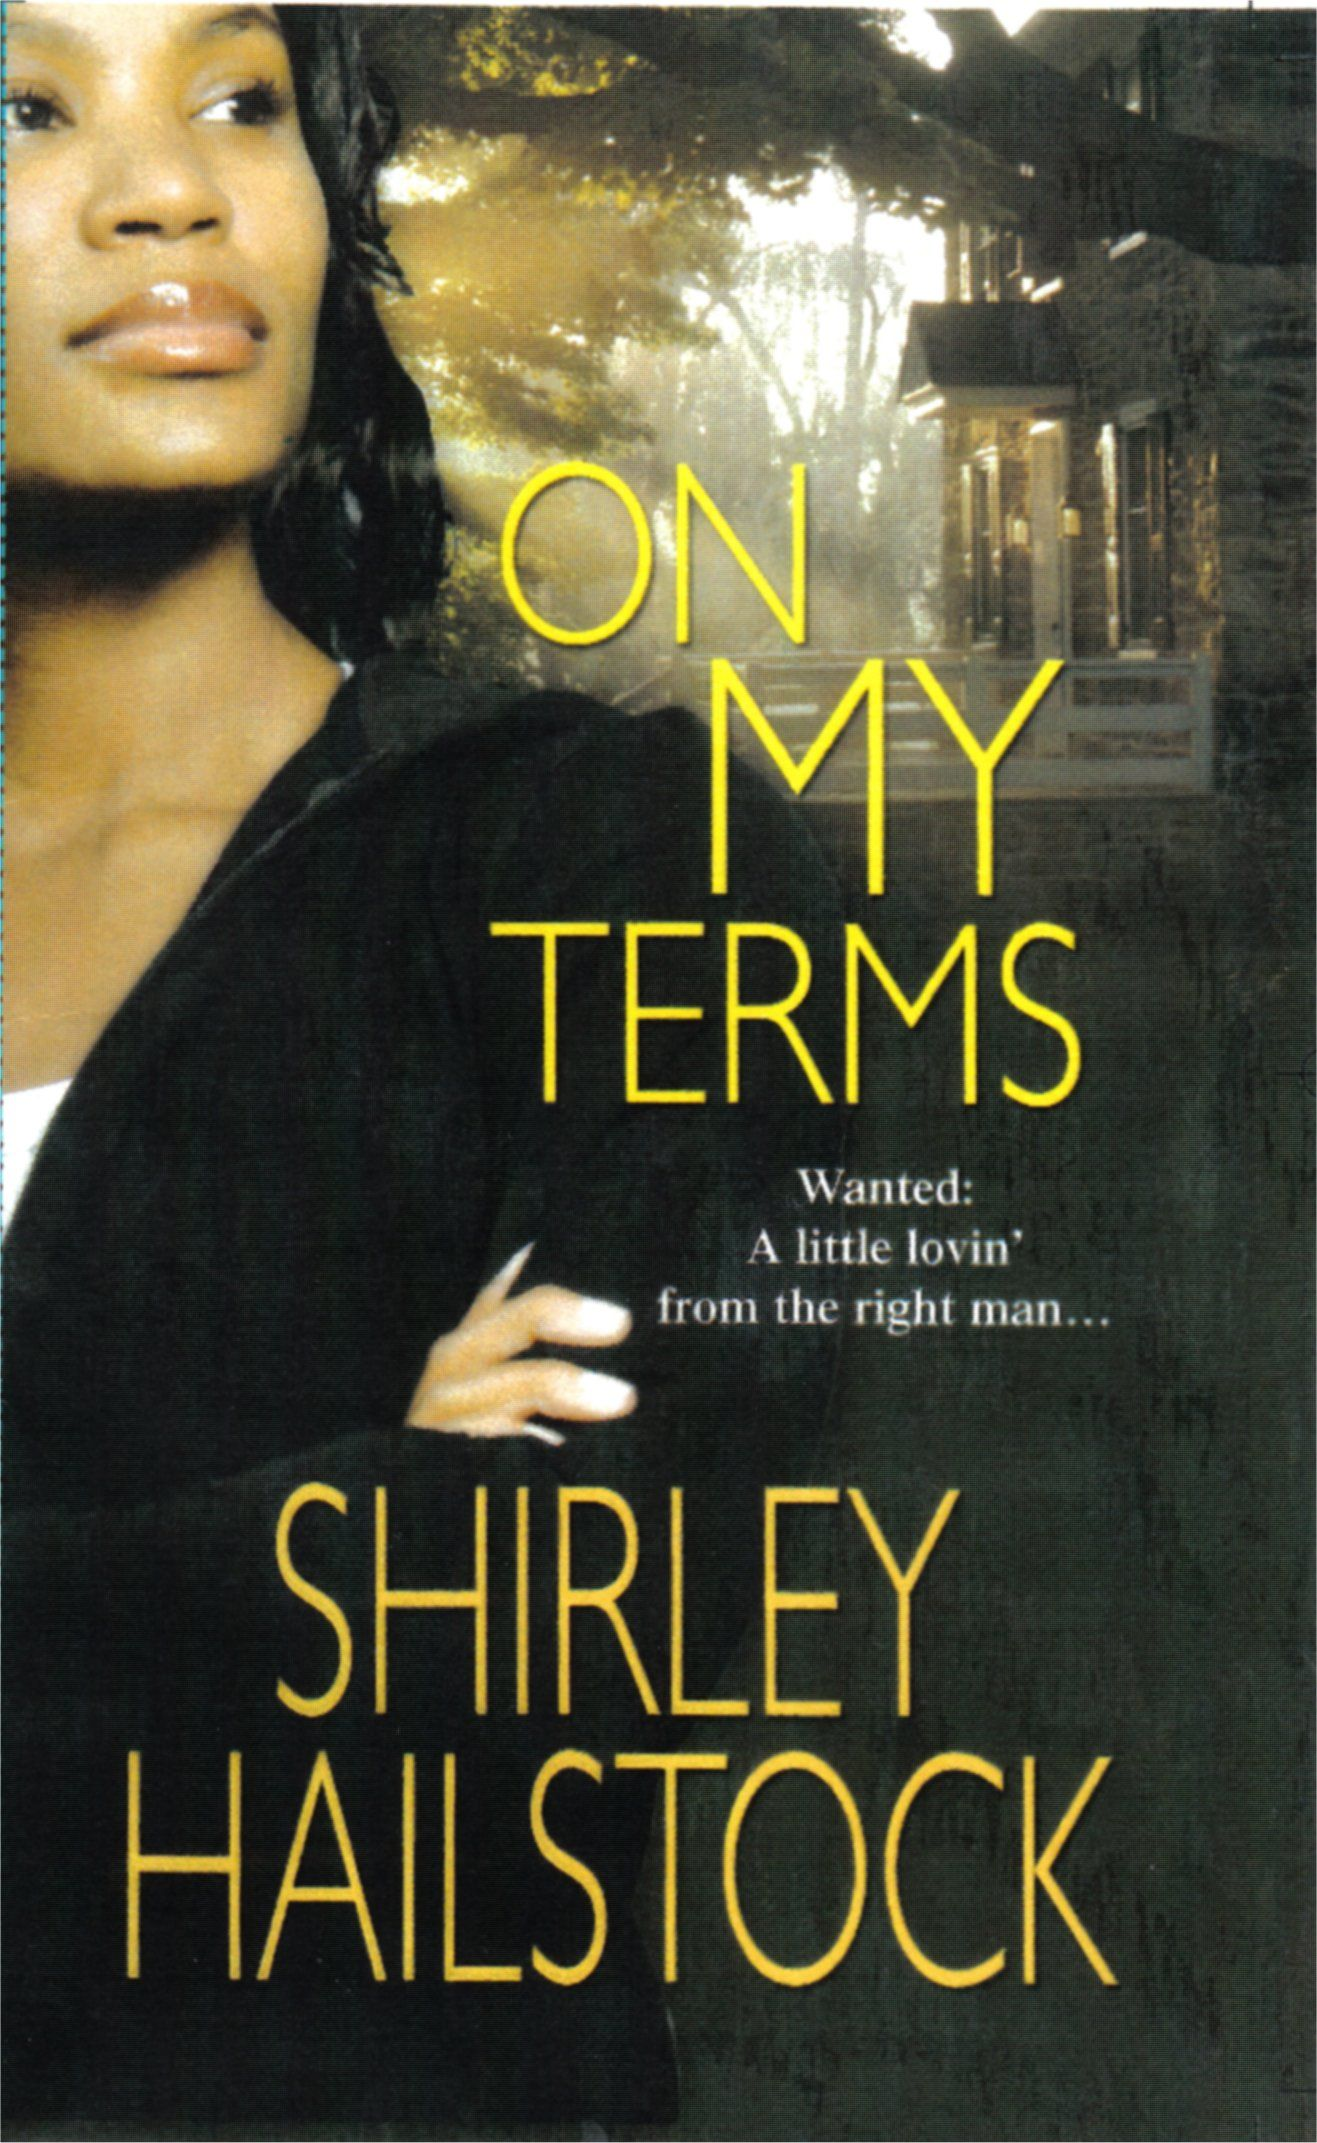 On My Terms by Shirley Hailstock. I wish I had a Clayton